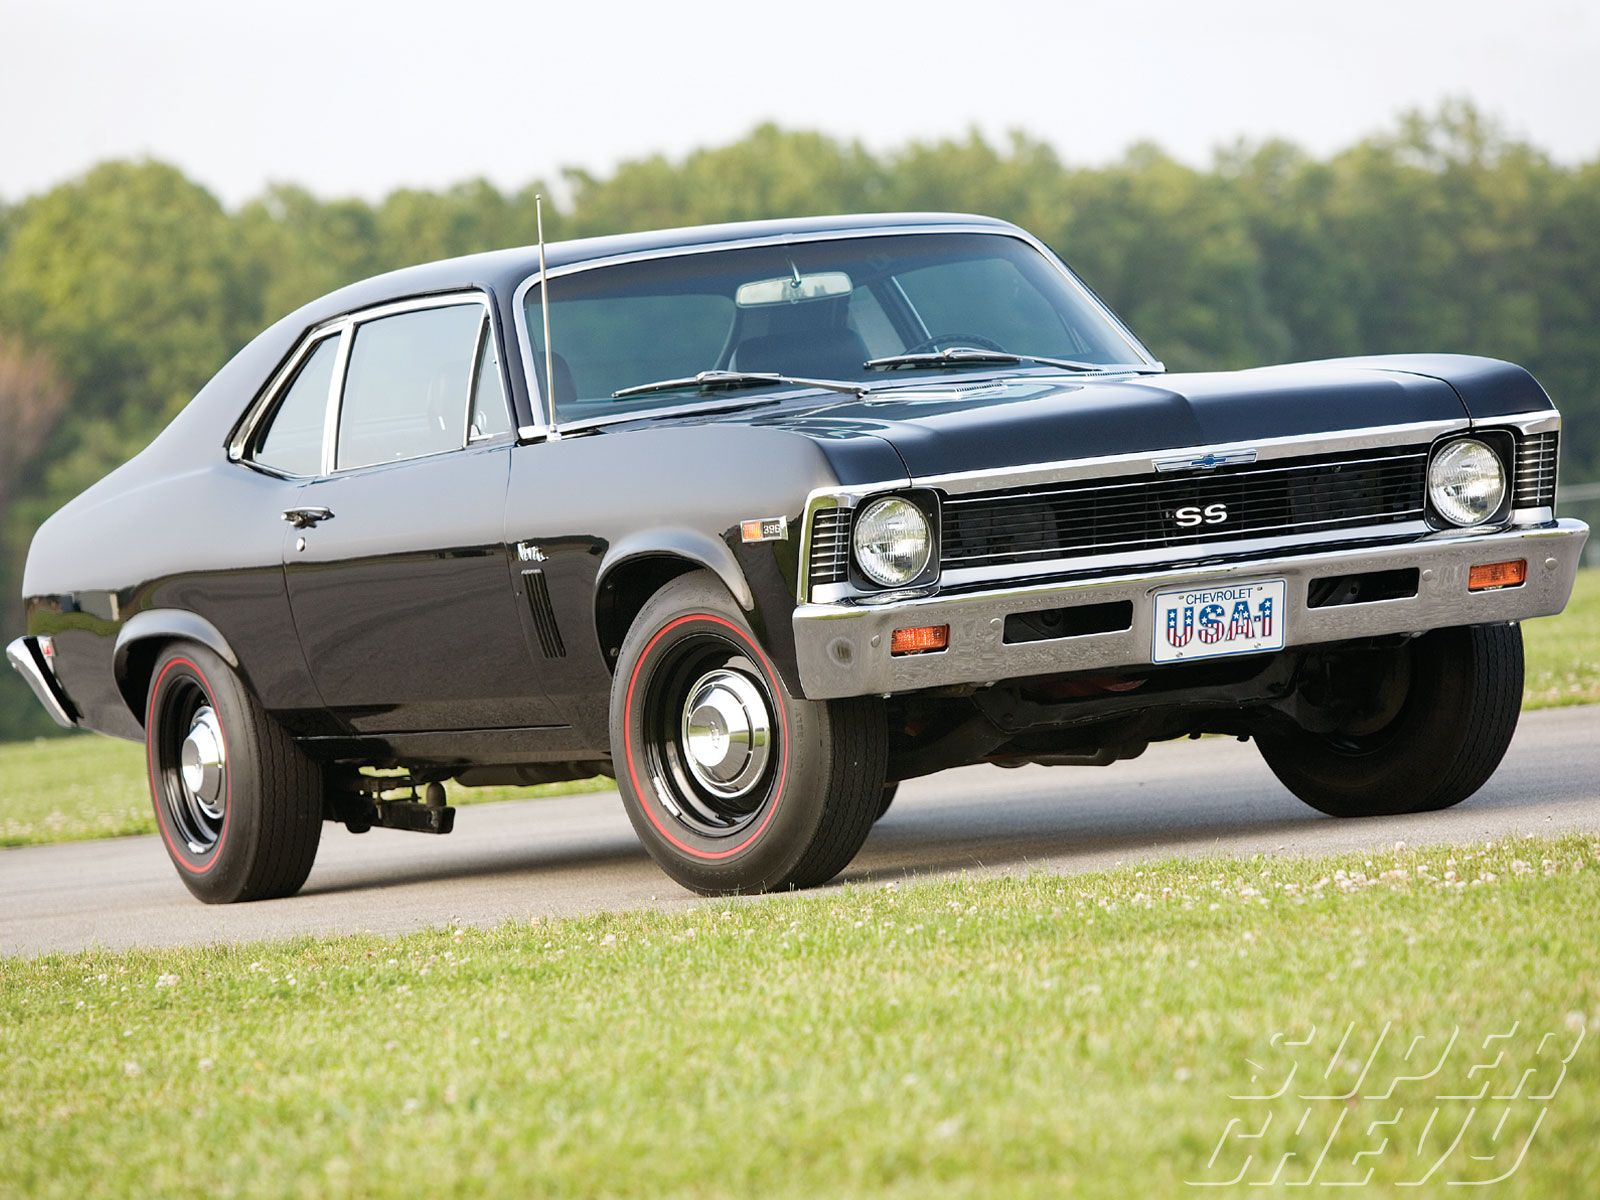 Check out this 1969 chevy nova ss with a 396 engine manual transmission zoom clutch strato bucket seats and firestone tires super chevy magazine